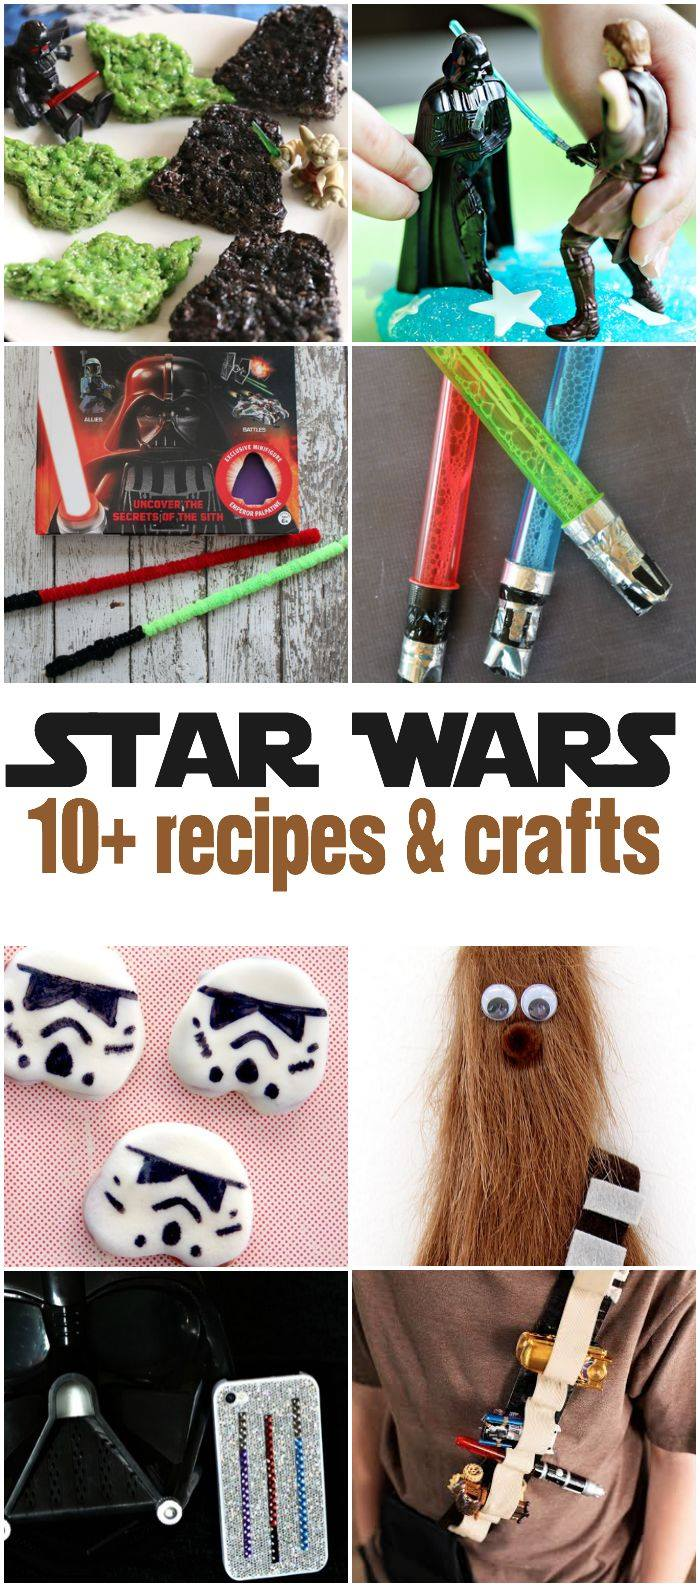 Star Wars recipe and craft ideas